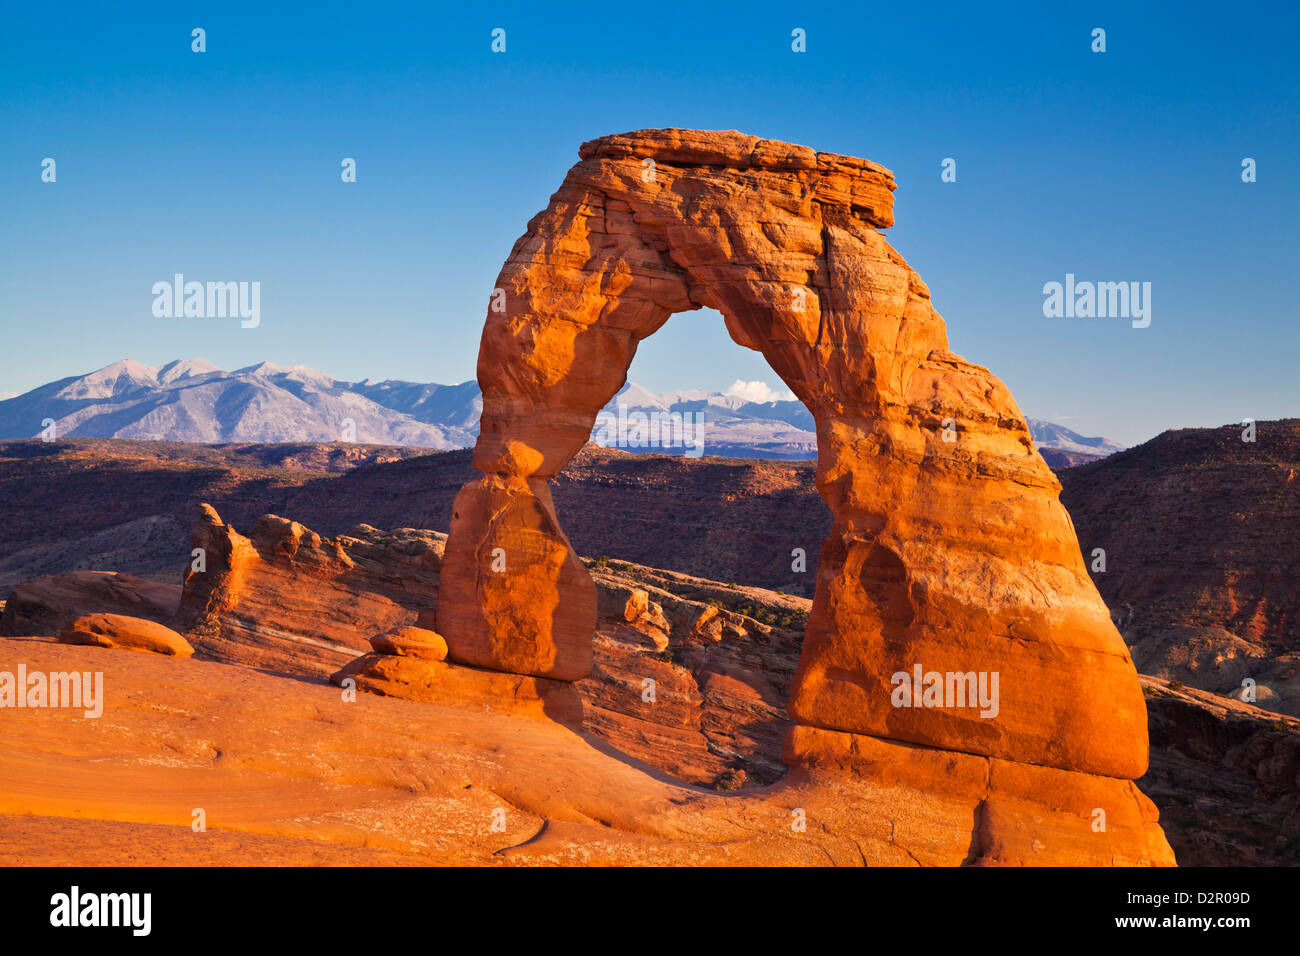 Delicate Arch, Arches National Park, near Moab, Utah, United States of America, North America - Stock Image